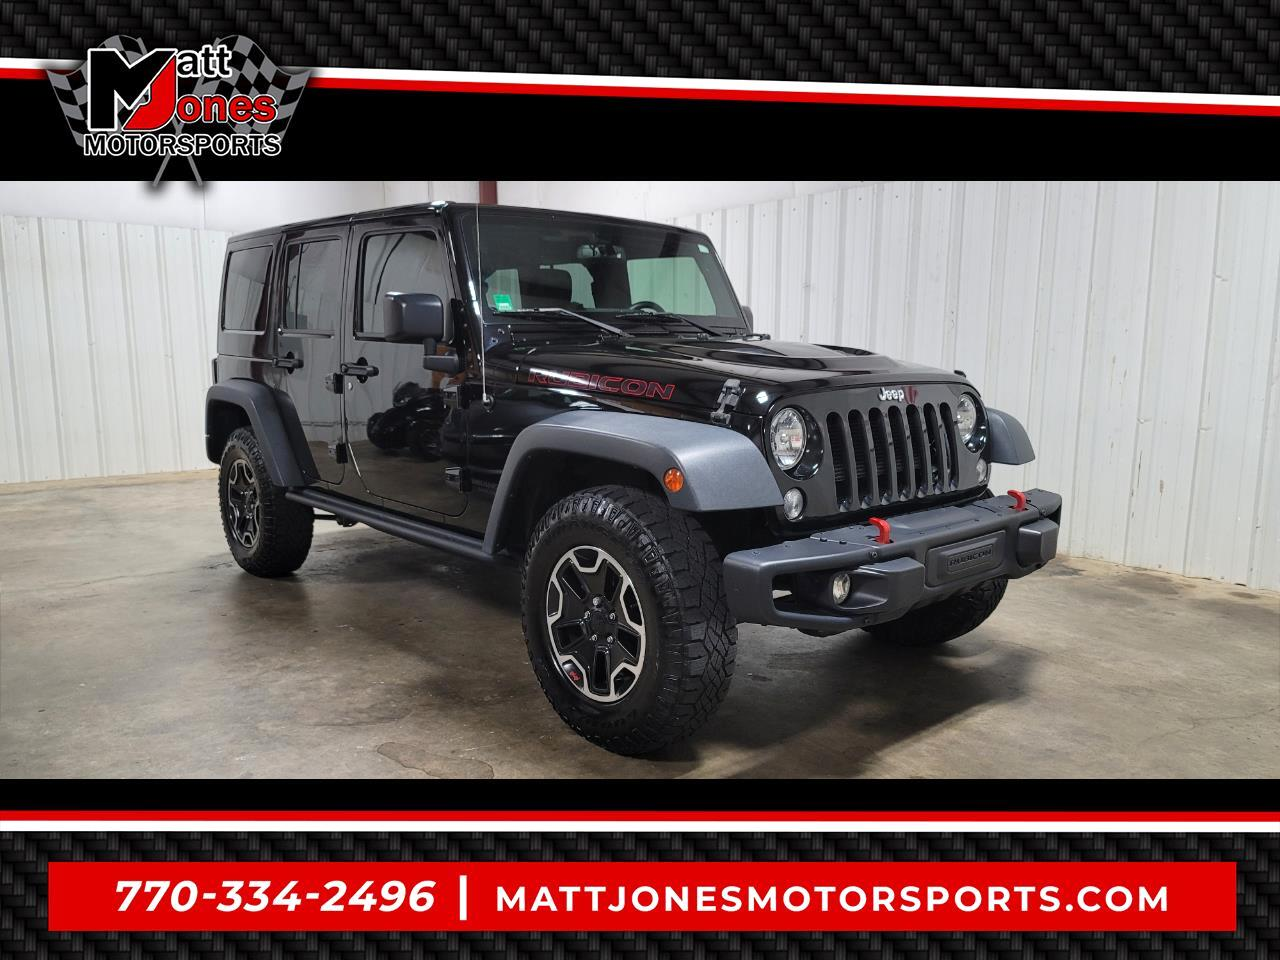 2015 Jeep Wrangler Unlimited 4WD 4dr Rubicon Hard Rock